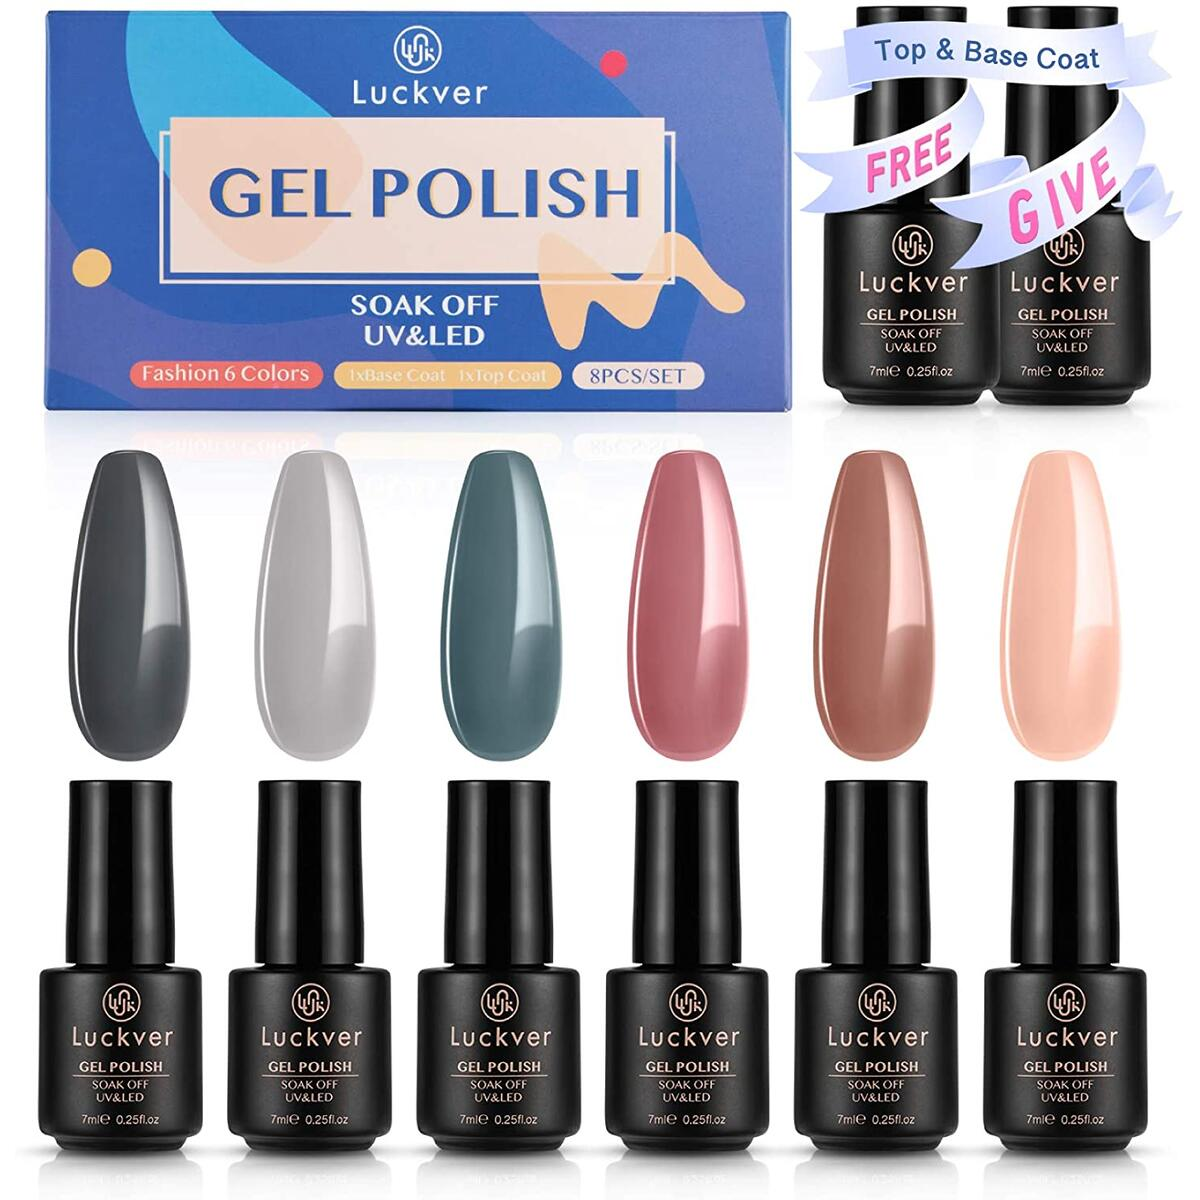 8pcs Gel Nail Polish Set. Nude Gray Pink Classic 6 Colors Nail Gel Polish, Soak Off UV Gel Nail Polish KIt with Glossy Top Coat and Base Coat, Home DIY Manicure Kit Gift Box